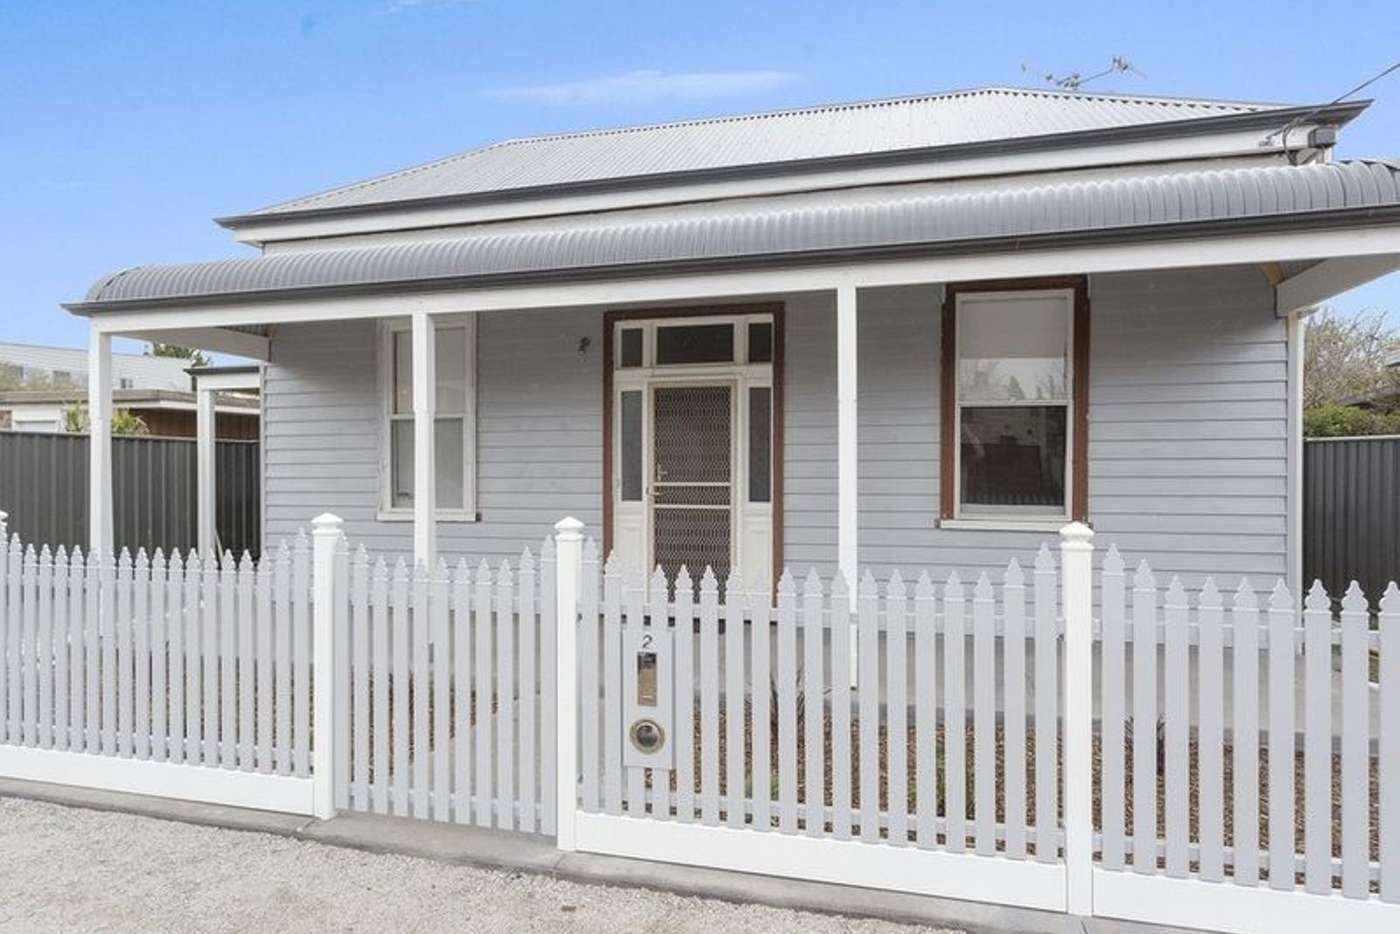 Main view of Homely house listing, 2 Holt Street, Bendigo VIC 3550